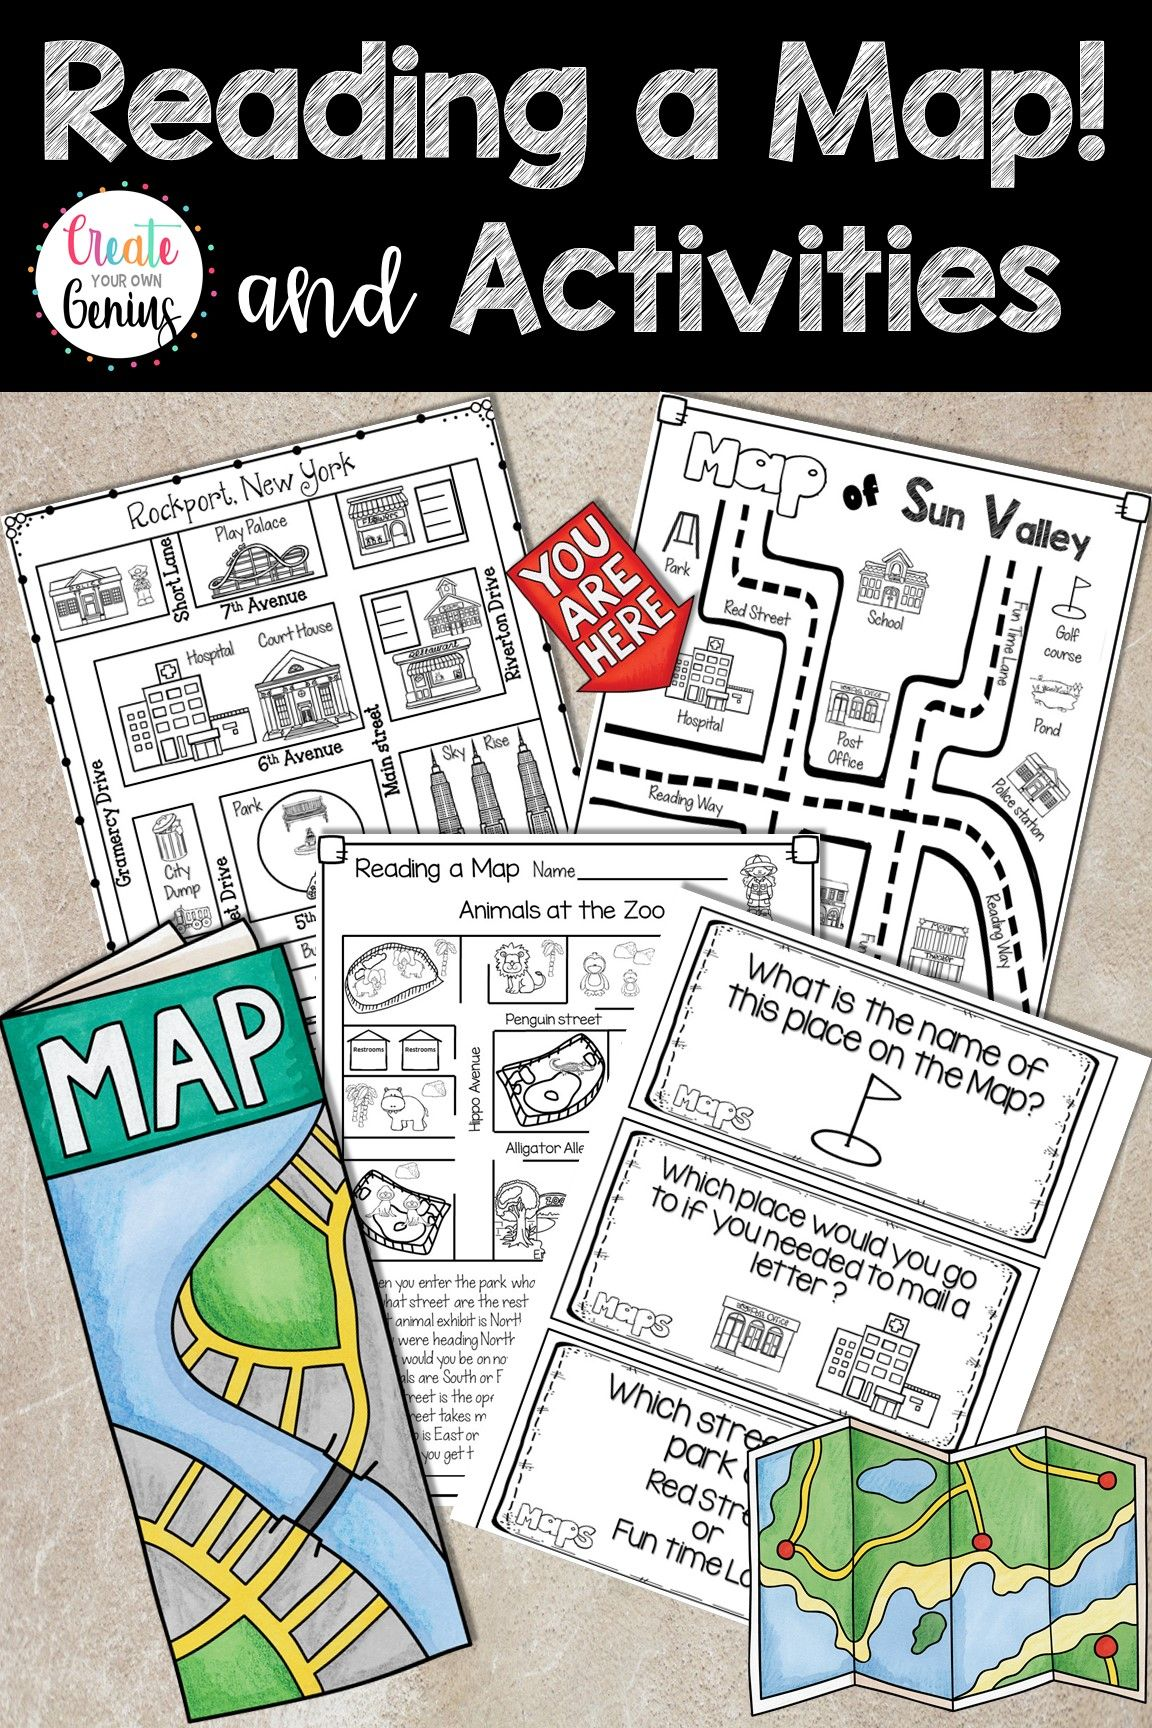 Happyholideals Map Skills Reading A Map And Activities